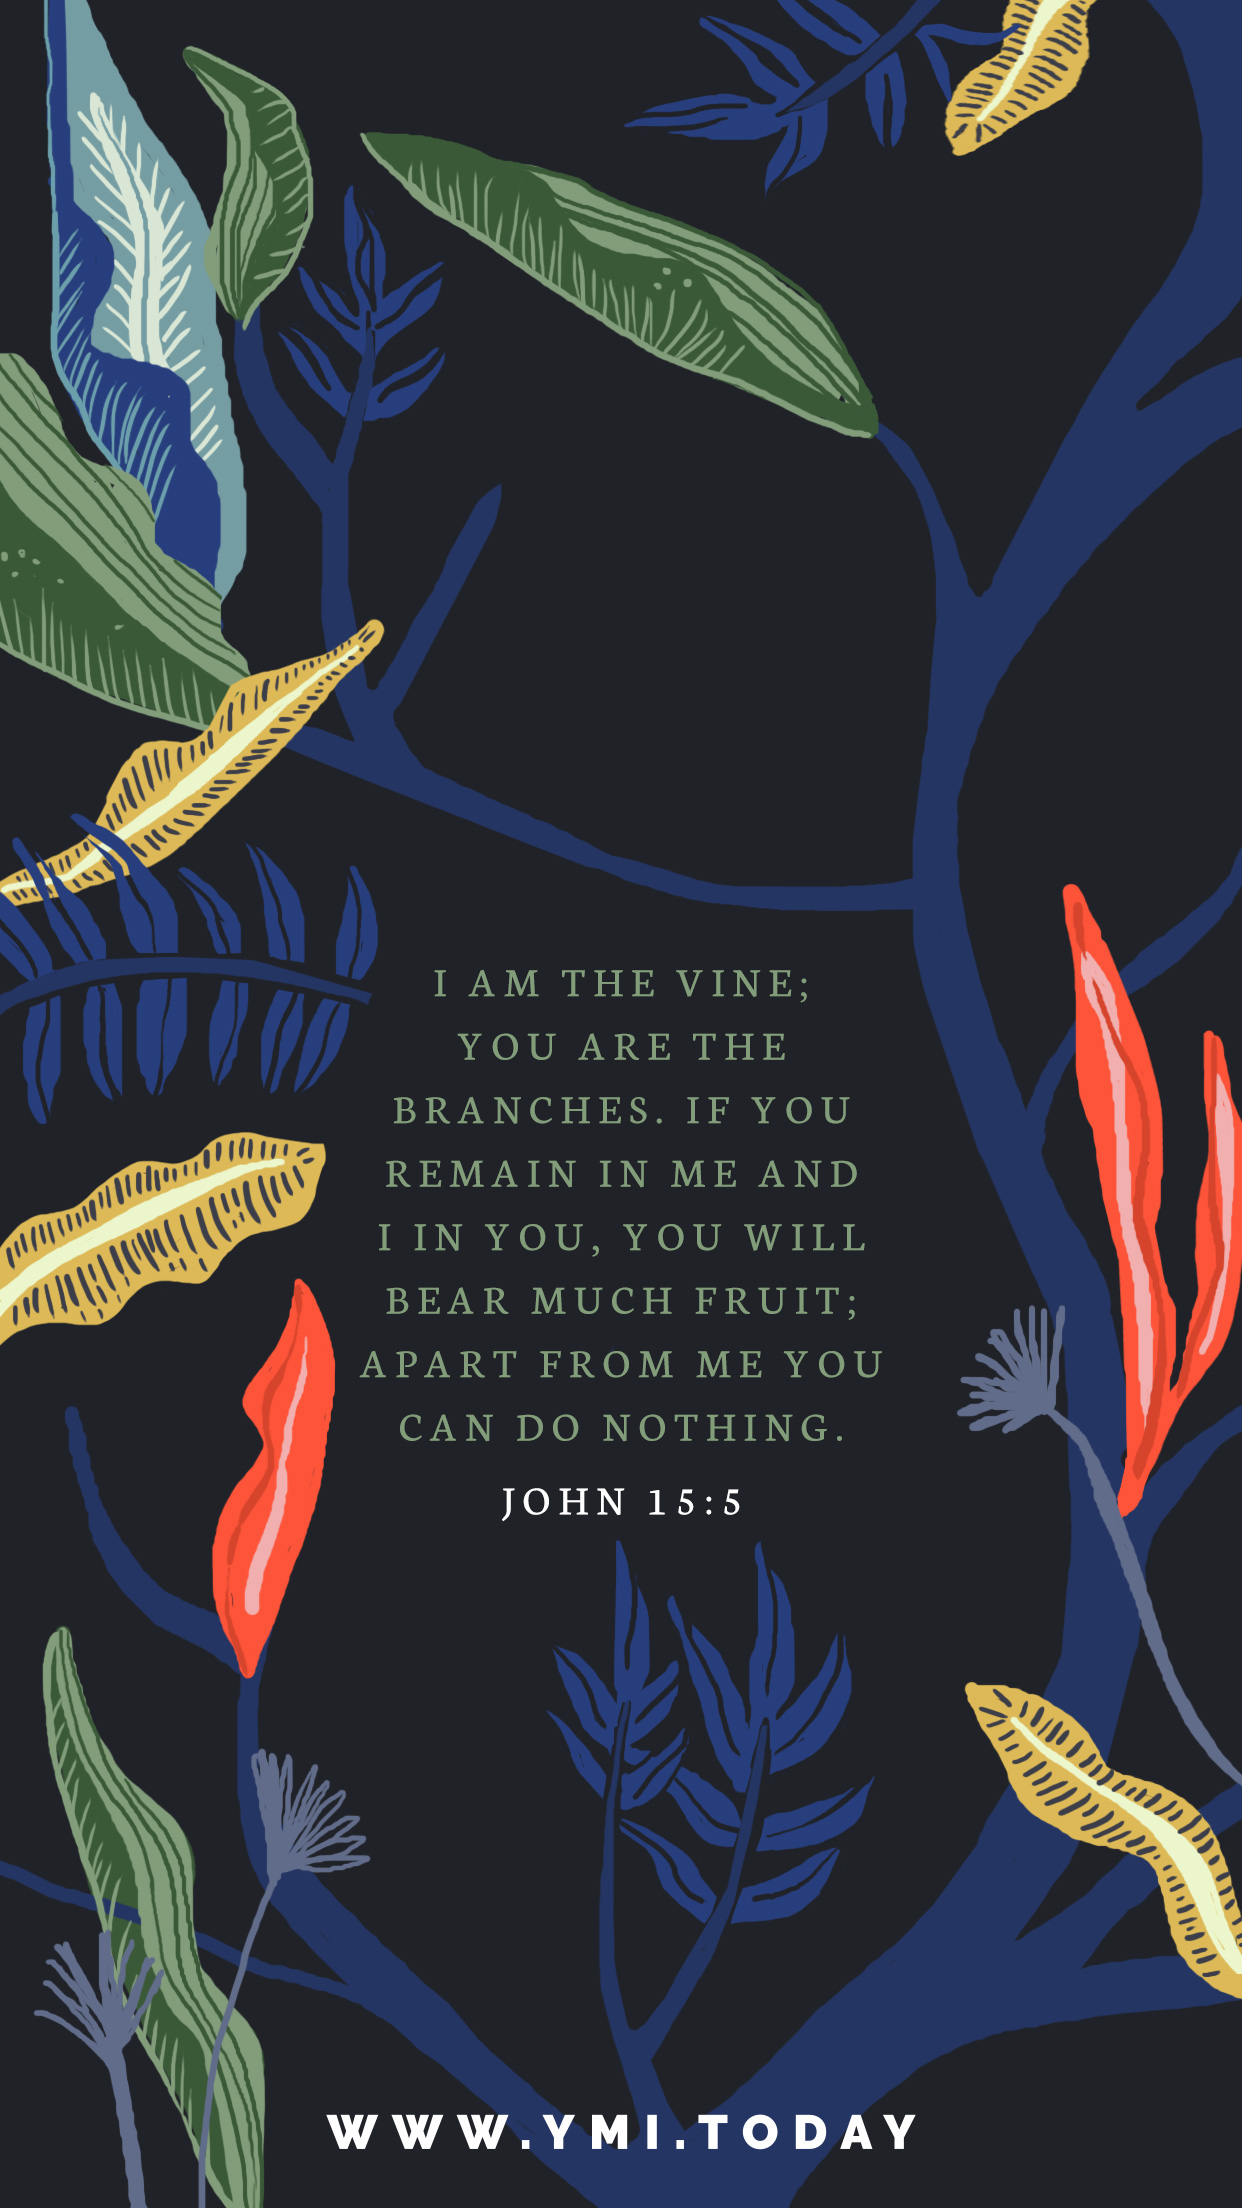 YMI March 2018 Phone Lockscreen - I am the vine; You are the branches. If you remain in Me and I in you, you will bear much fruit; Apart from Me you can do nothing. - John 15:5